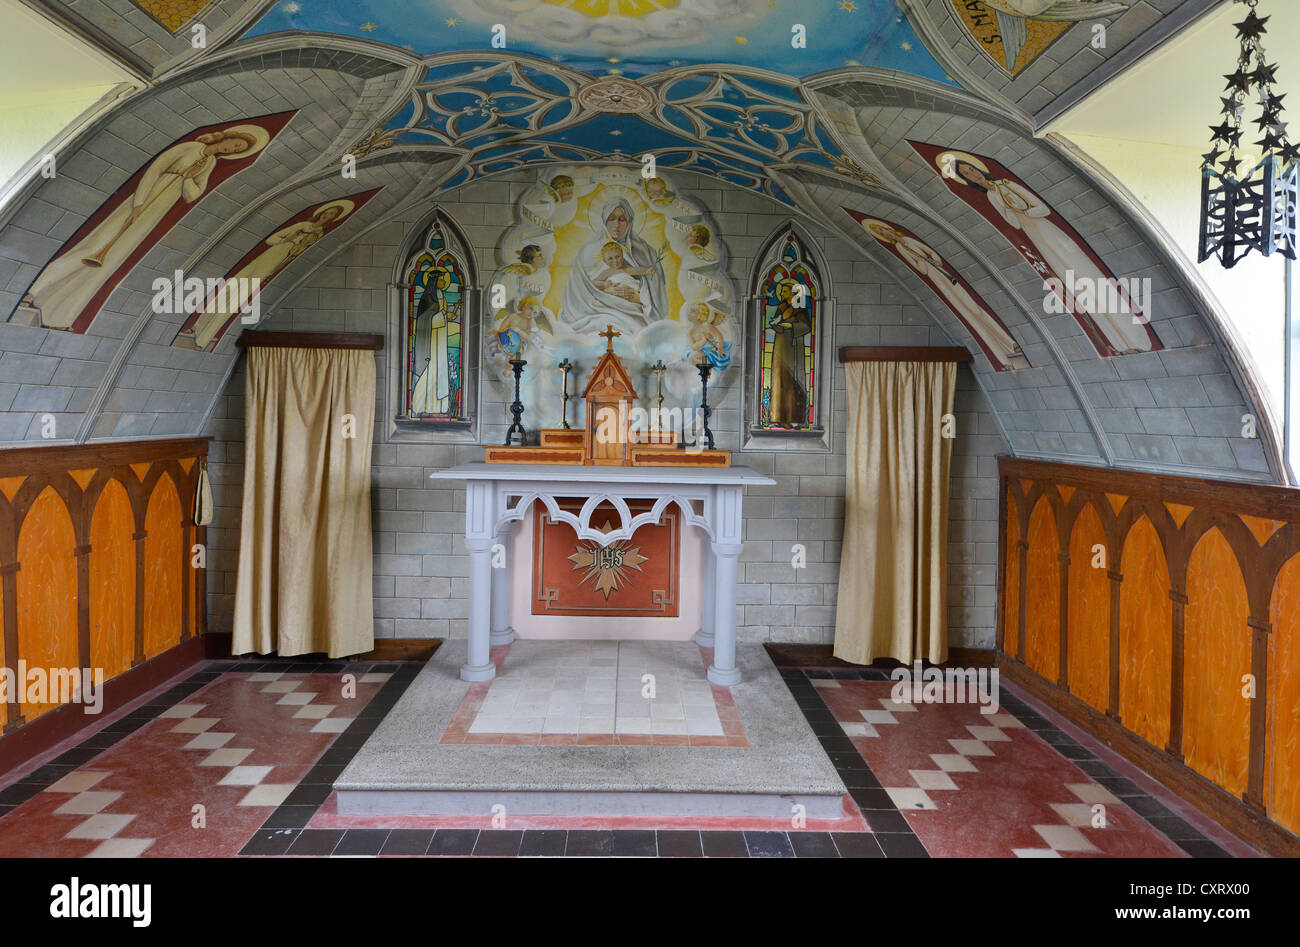 Chancel, erected by Italien prisoners of war during the Second World War, Italian Chapel, Orkney Islands, Scotland - Stock Image